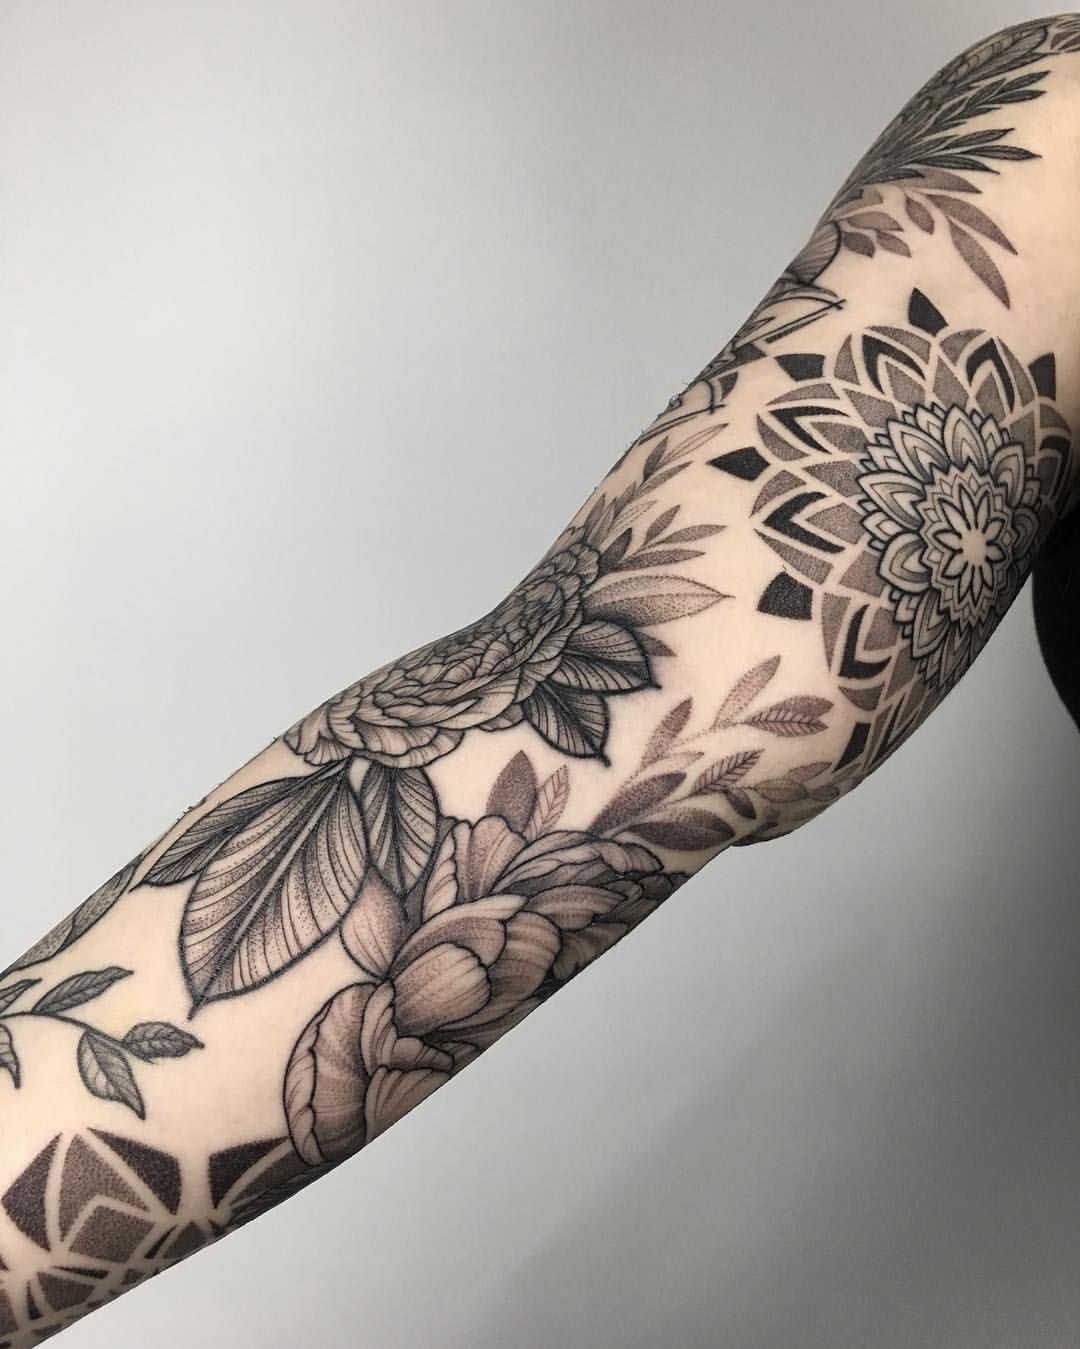 "Oleksandra Masiuk on Instagram: ""A sleeve is done for 4 days for our friend from Brazil @regorini ❤️ Thanks for your trust #sashamasiuk #sashatattooing #tattoo#tattooartist…"""